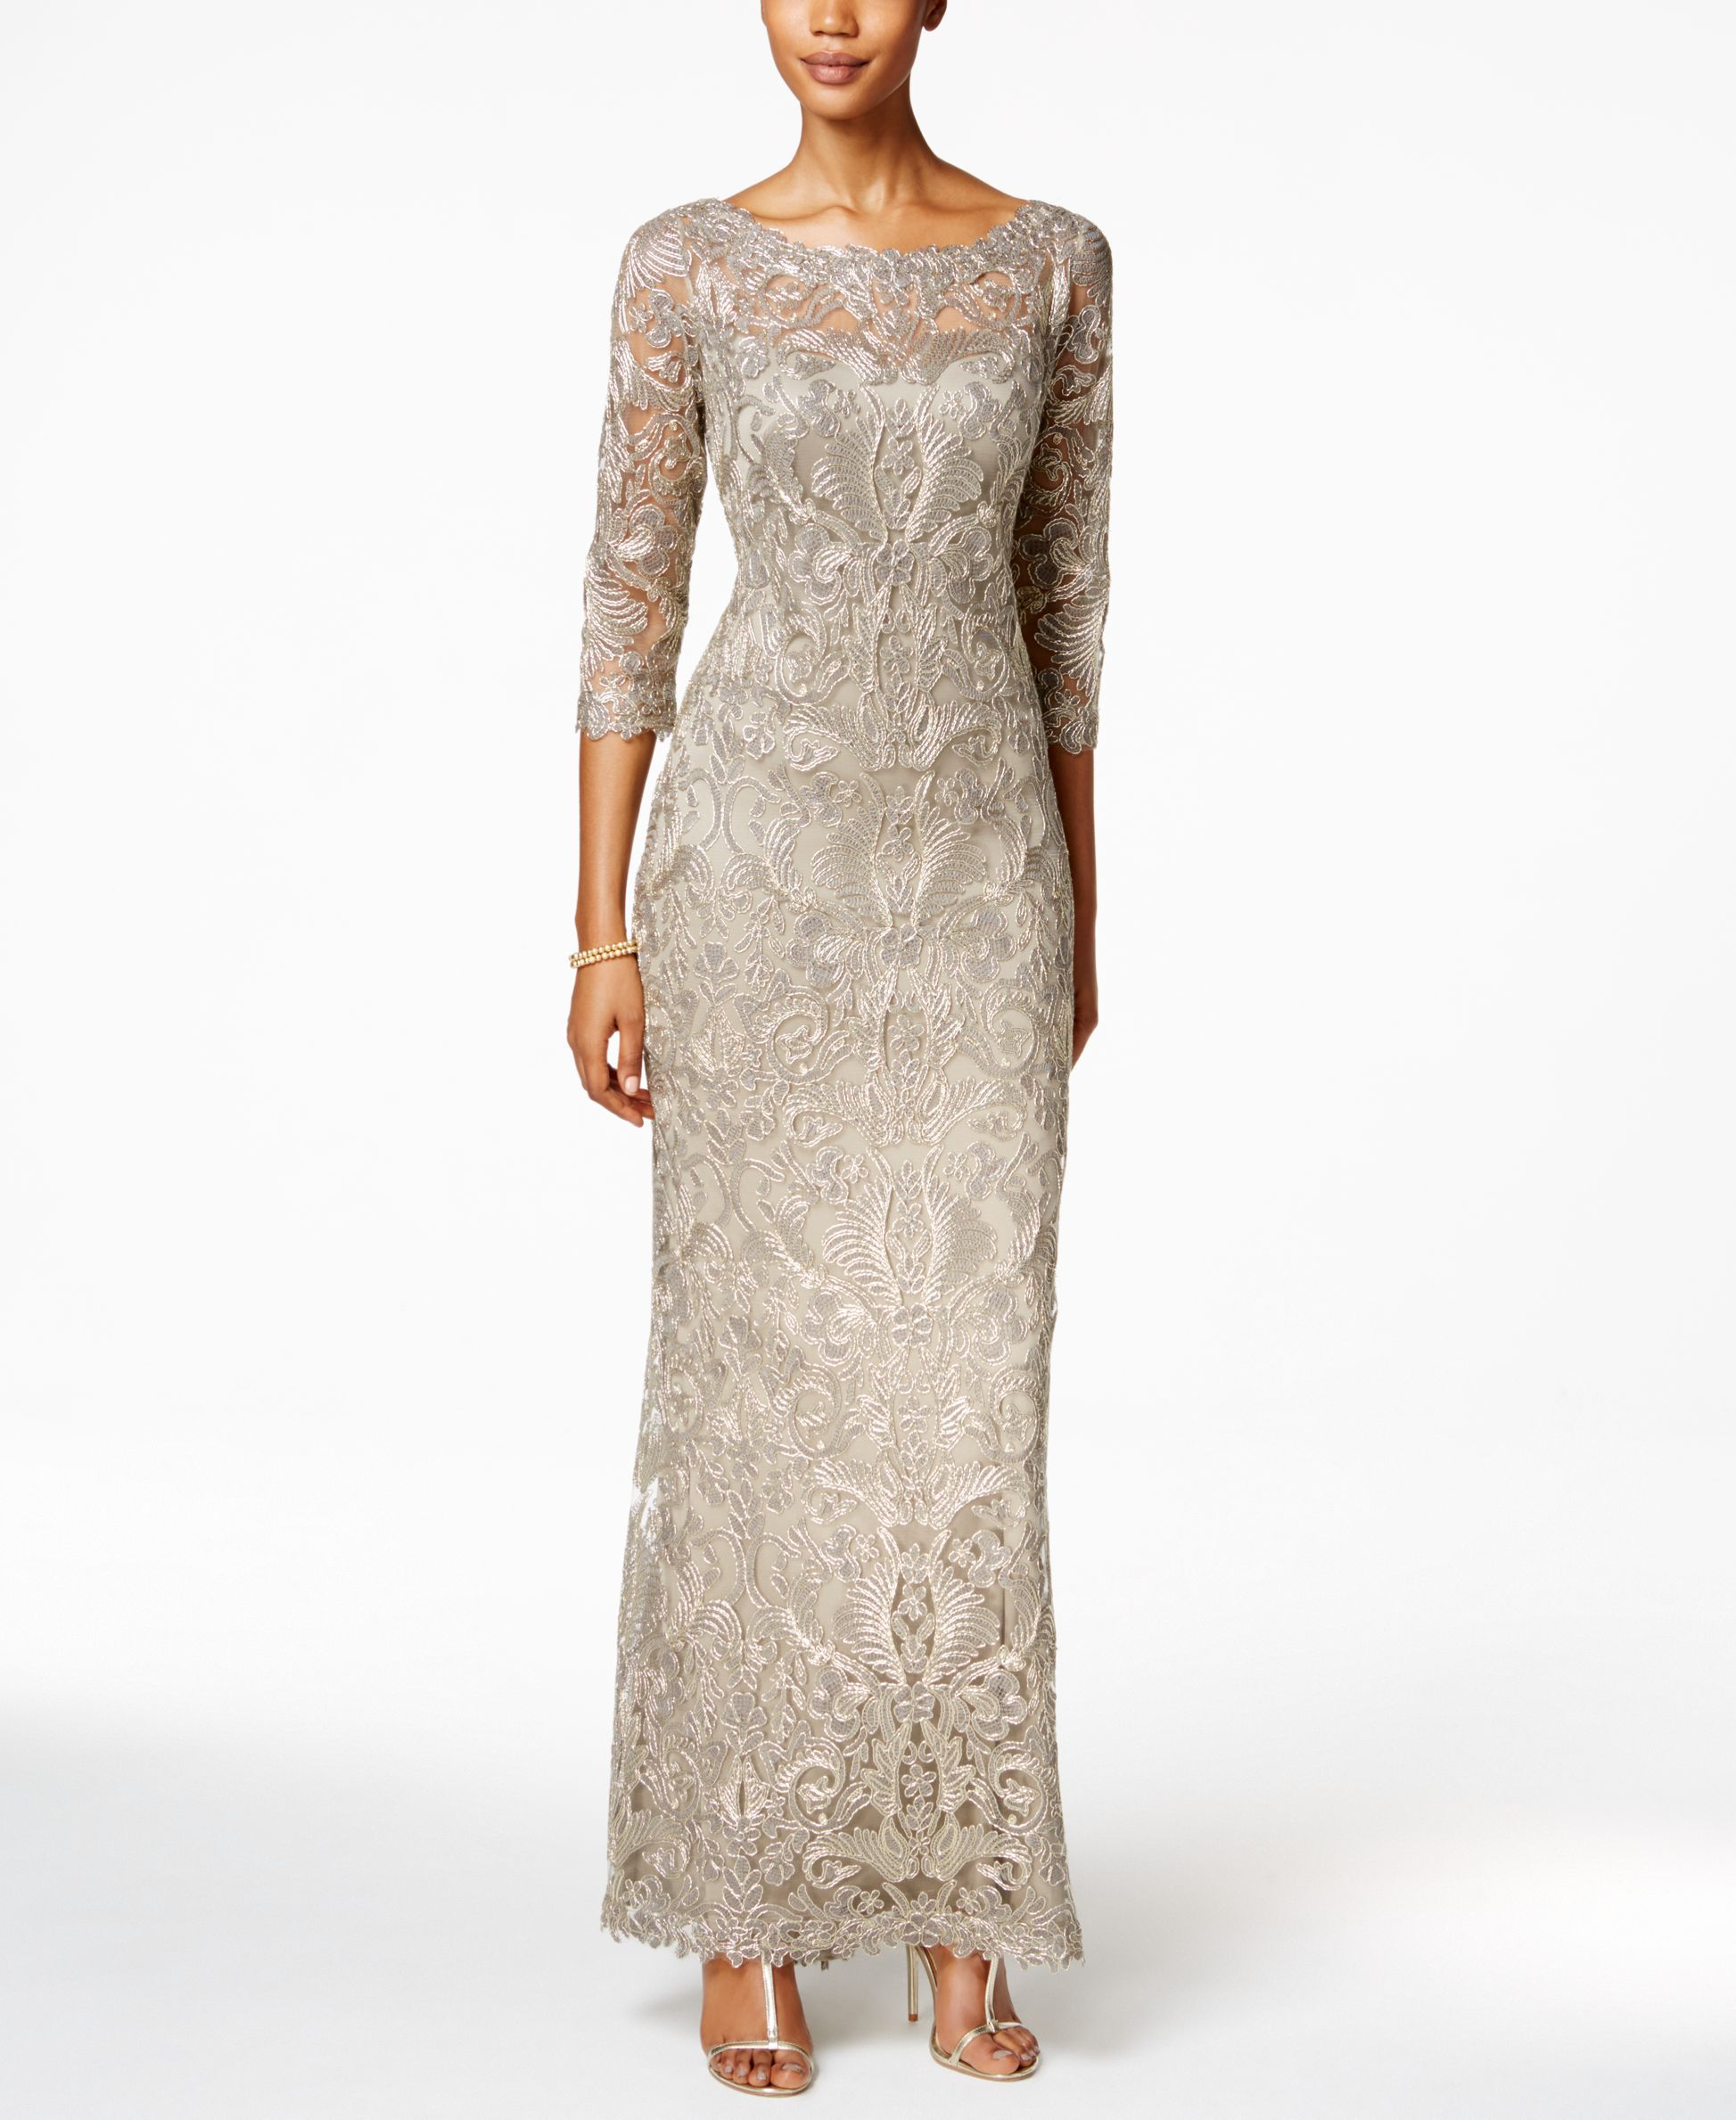 Tadashi Shoji Embroidered Lace Illusion Gown | Products | Pinterest ...